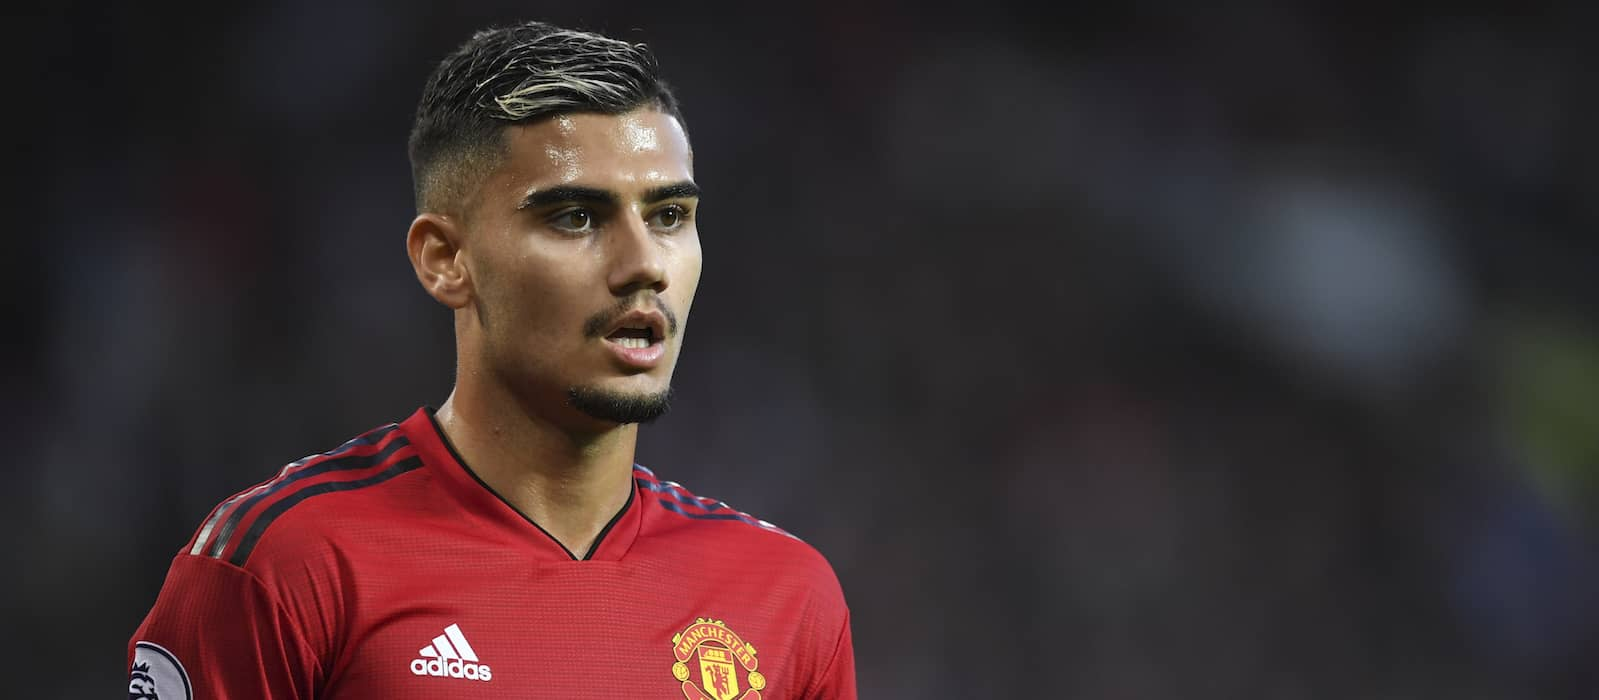 Andreas Pereira: I'll play wherever Jose Mourinho wants me to